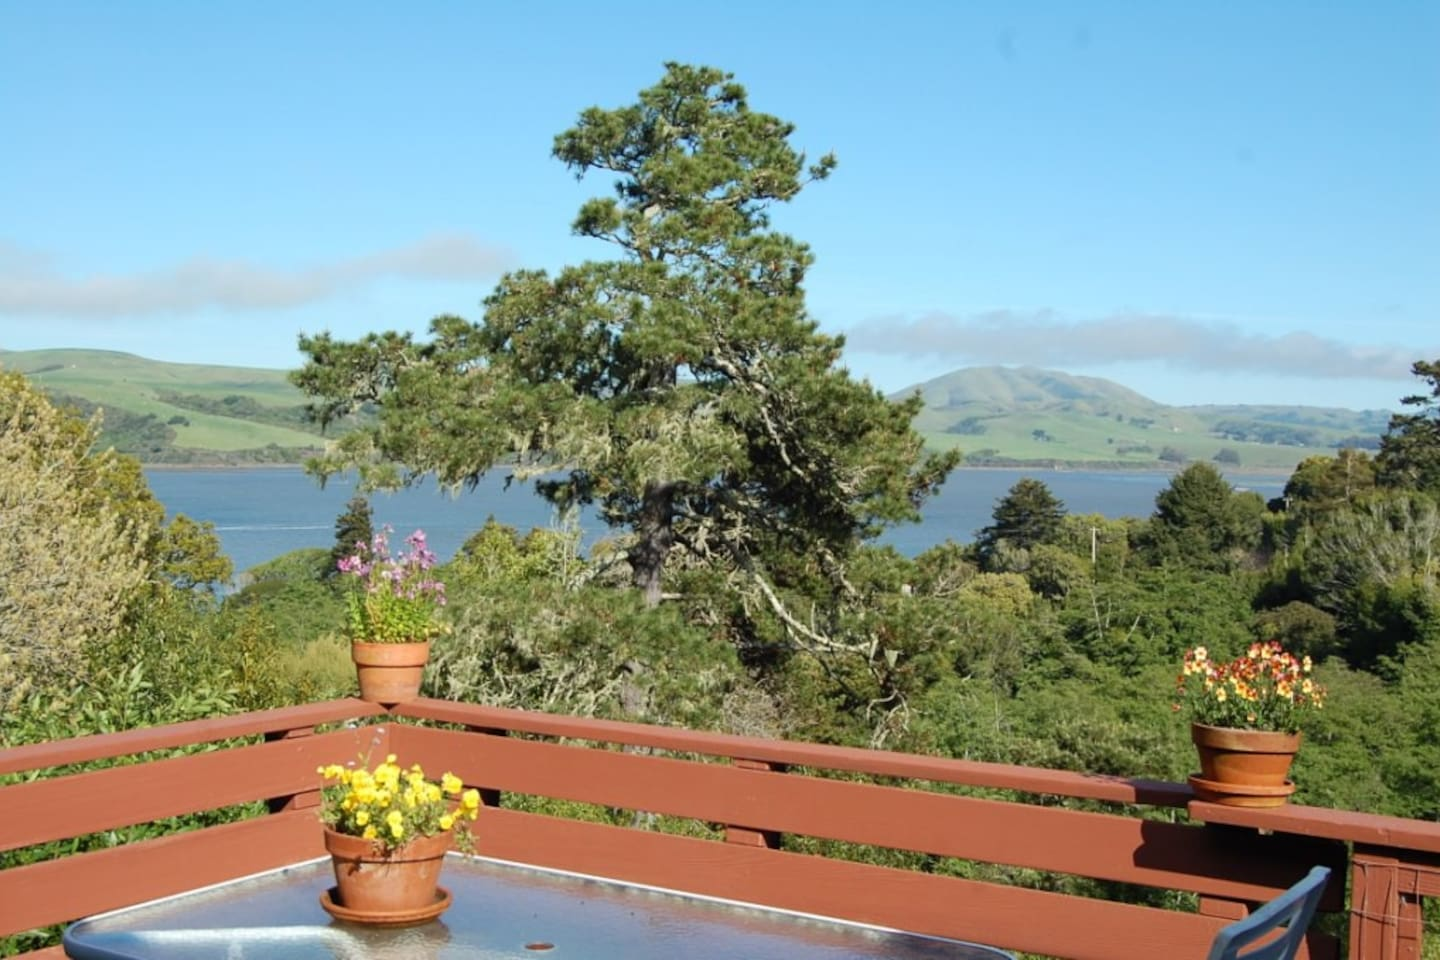 The view off the porch, looking south/east across the Tomales bay